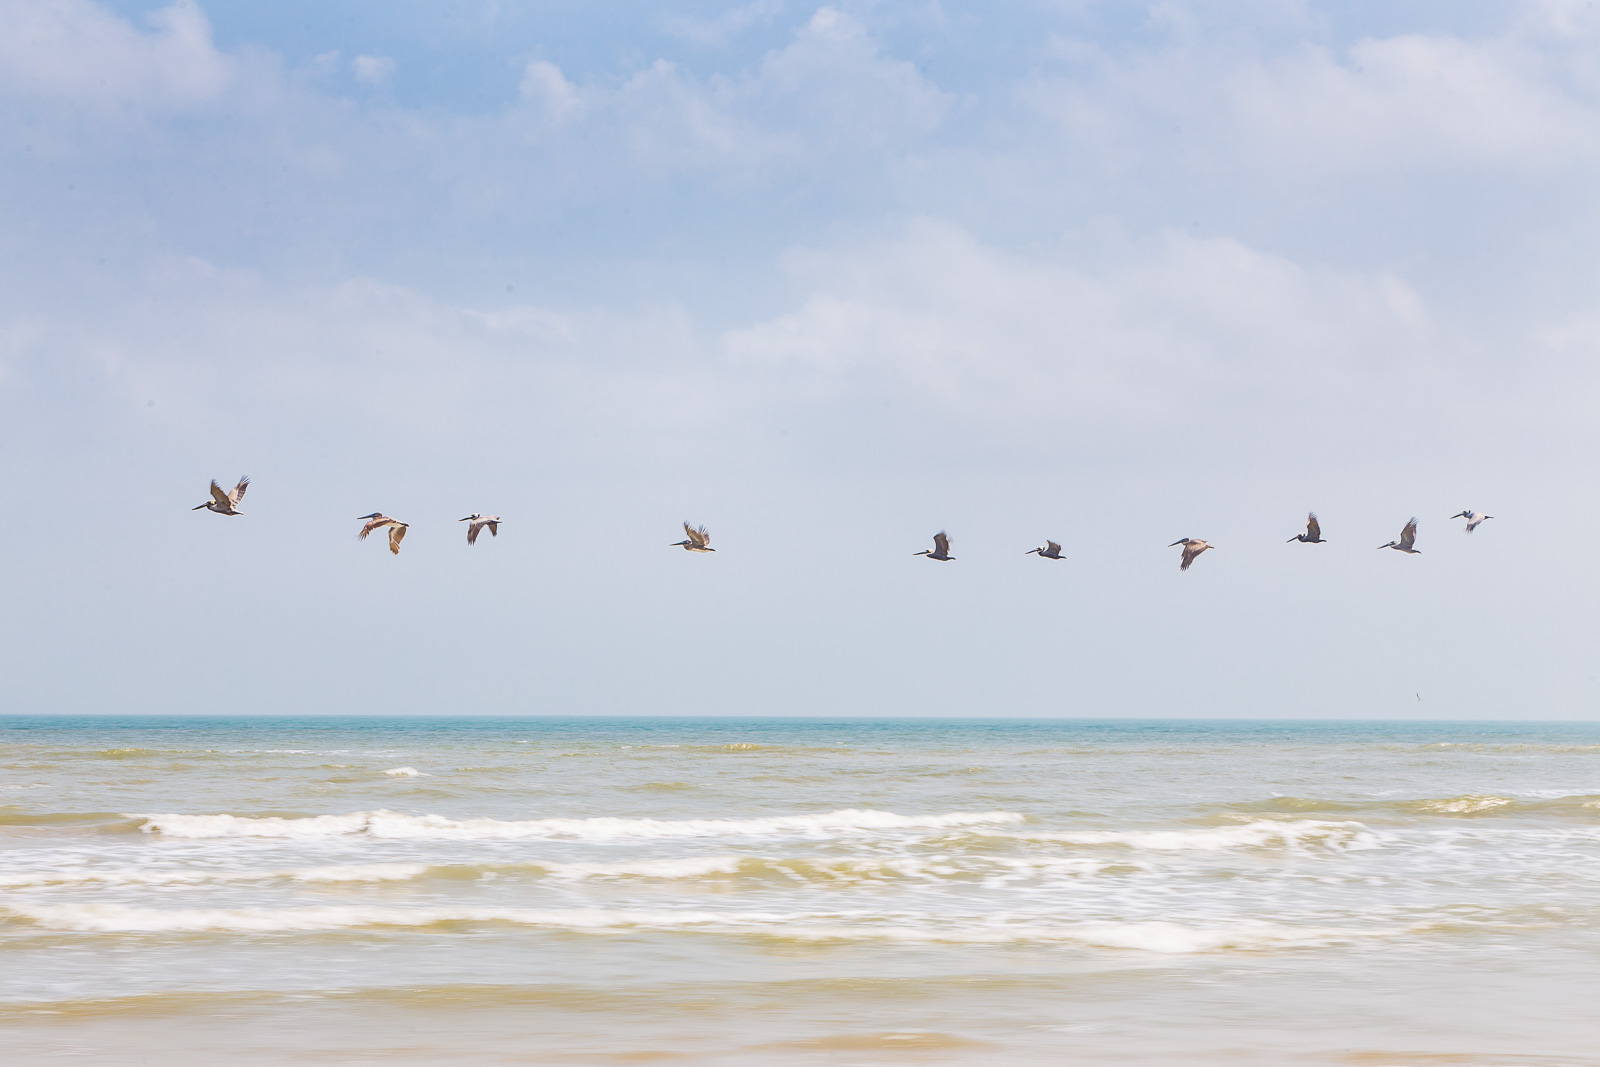 Pelicans at Padre Island